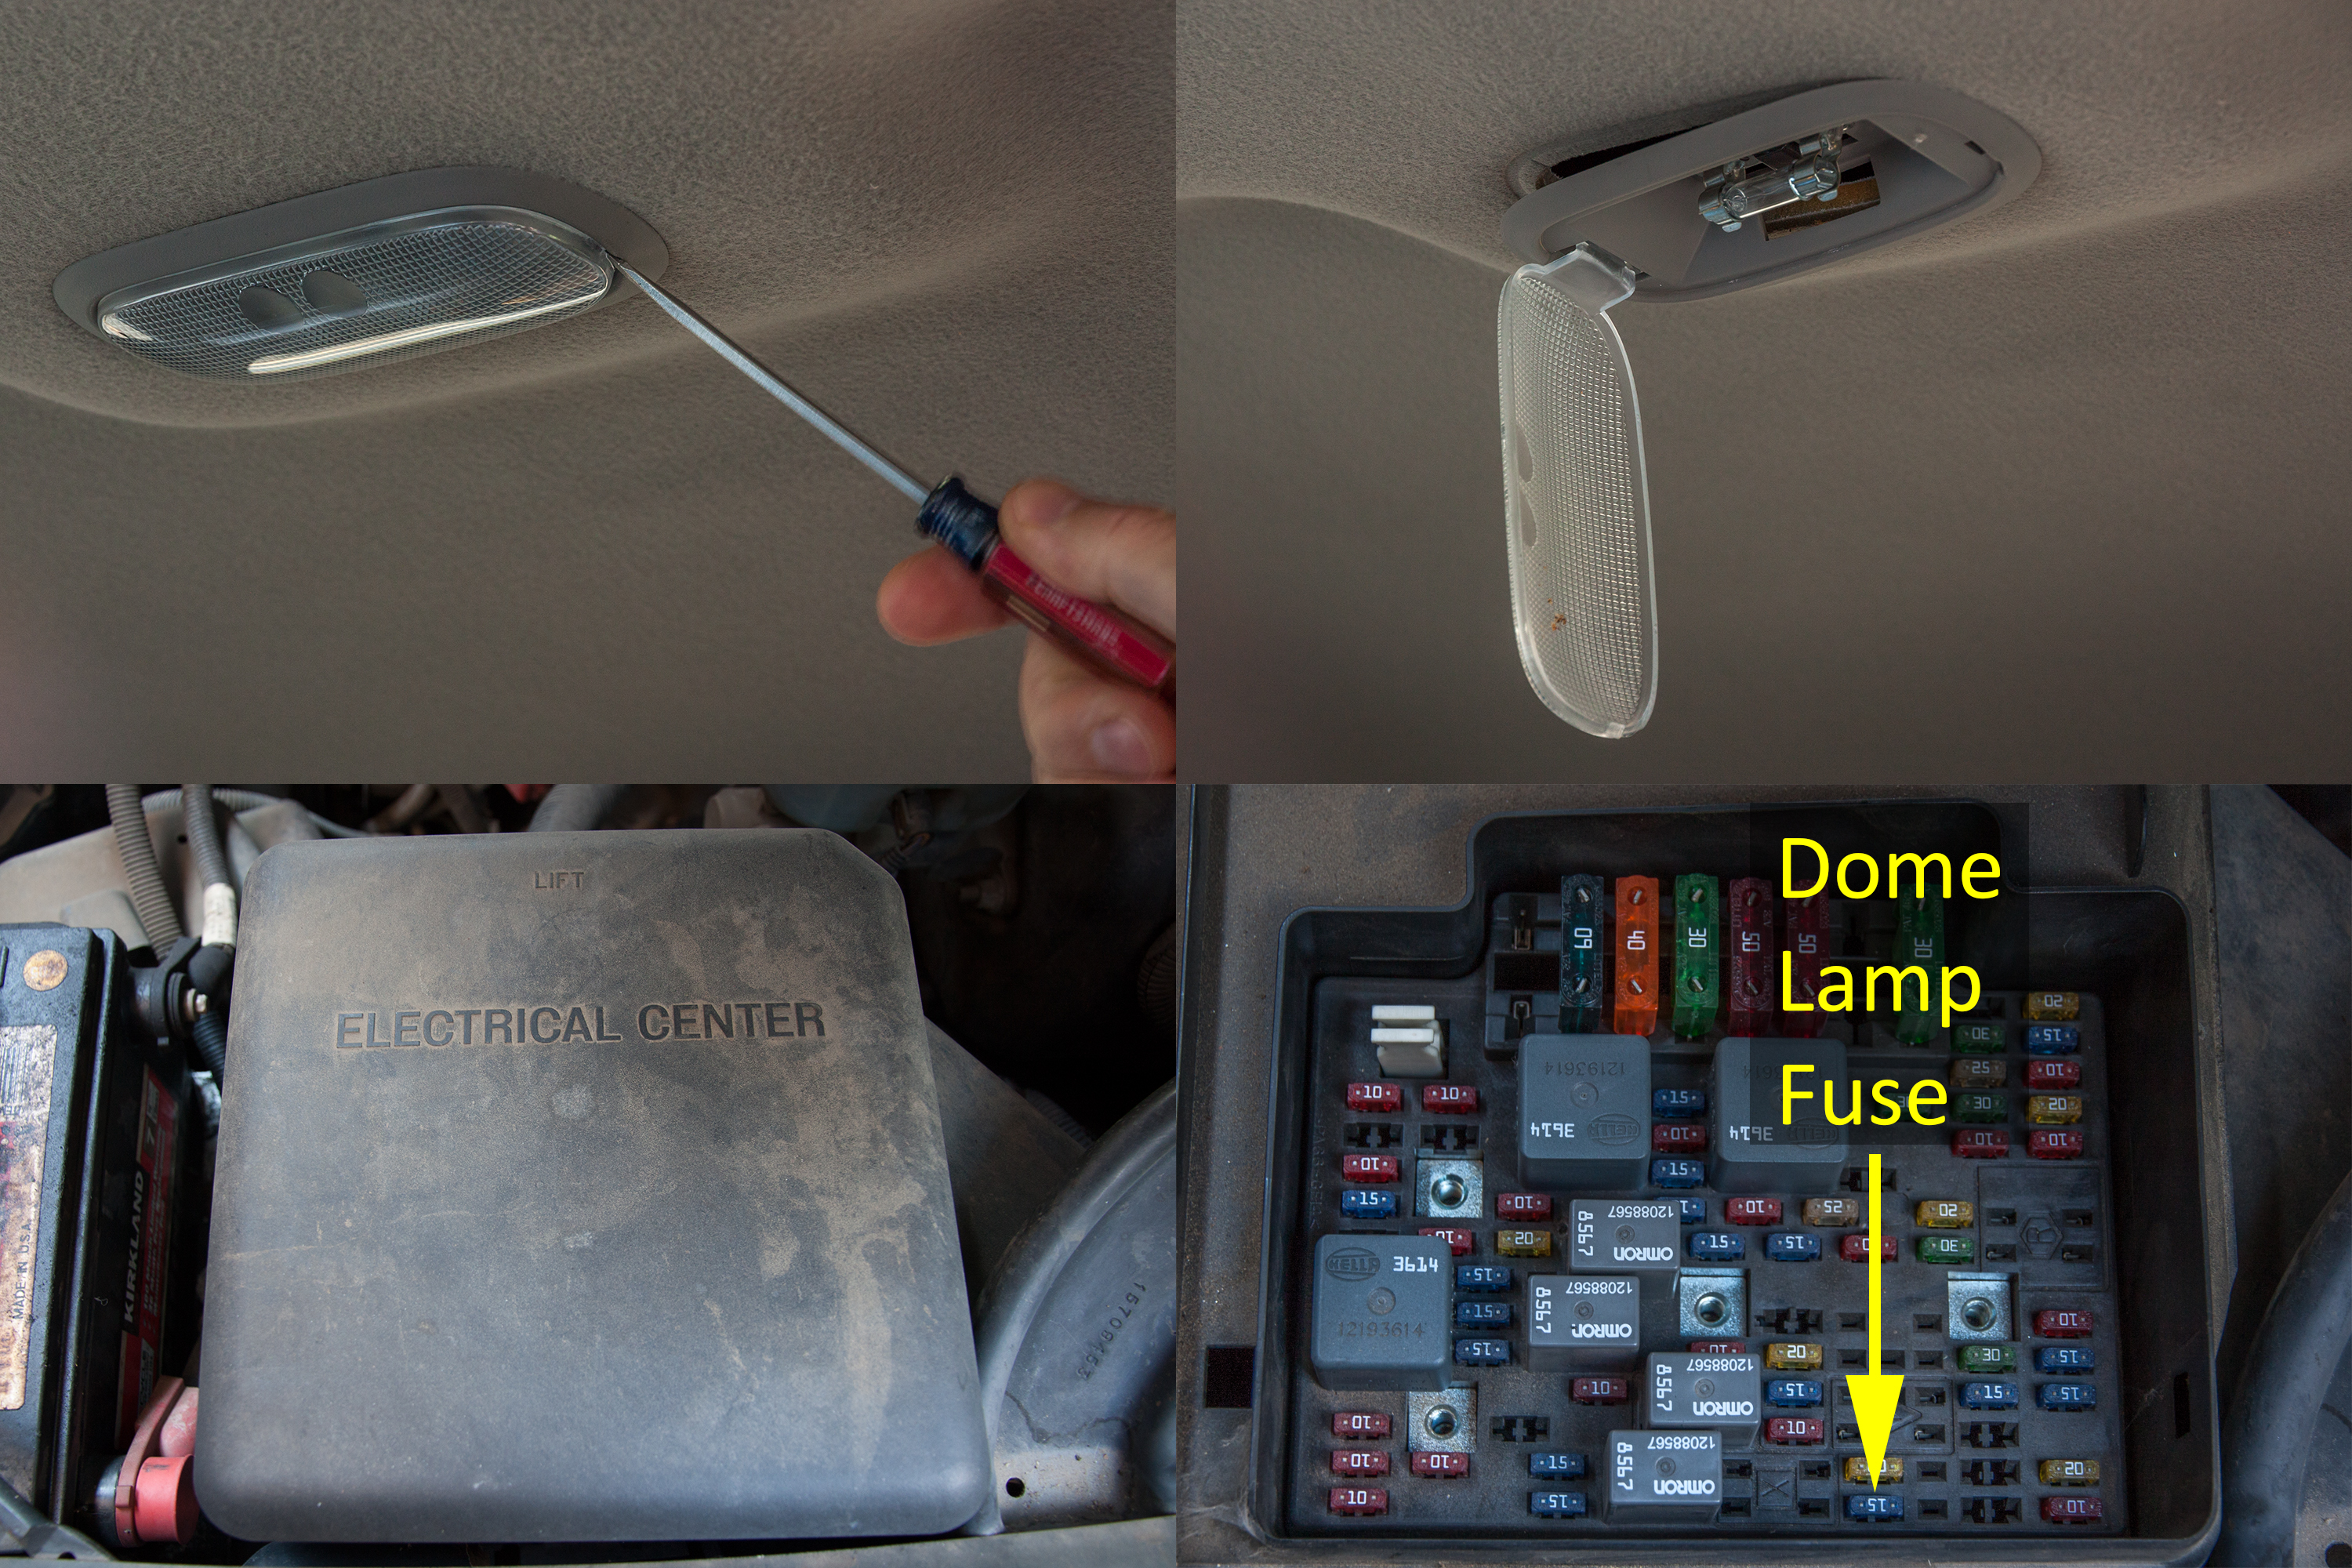 b1324b8b 9560 4e0d b41a a6dc8285989a how to make the dome light come on in a chevy truck it still  at gsmx.co